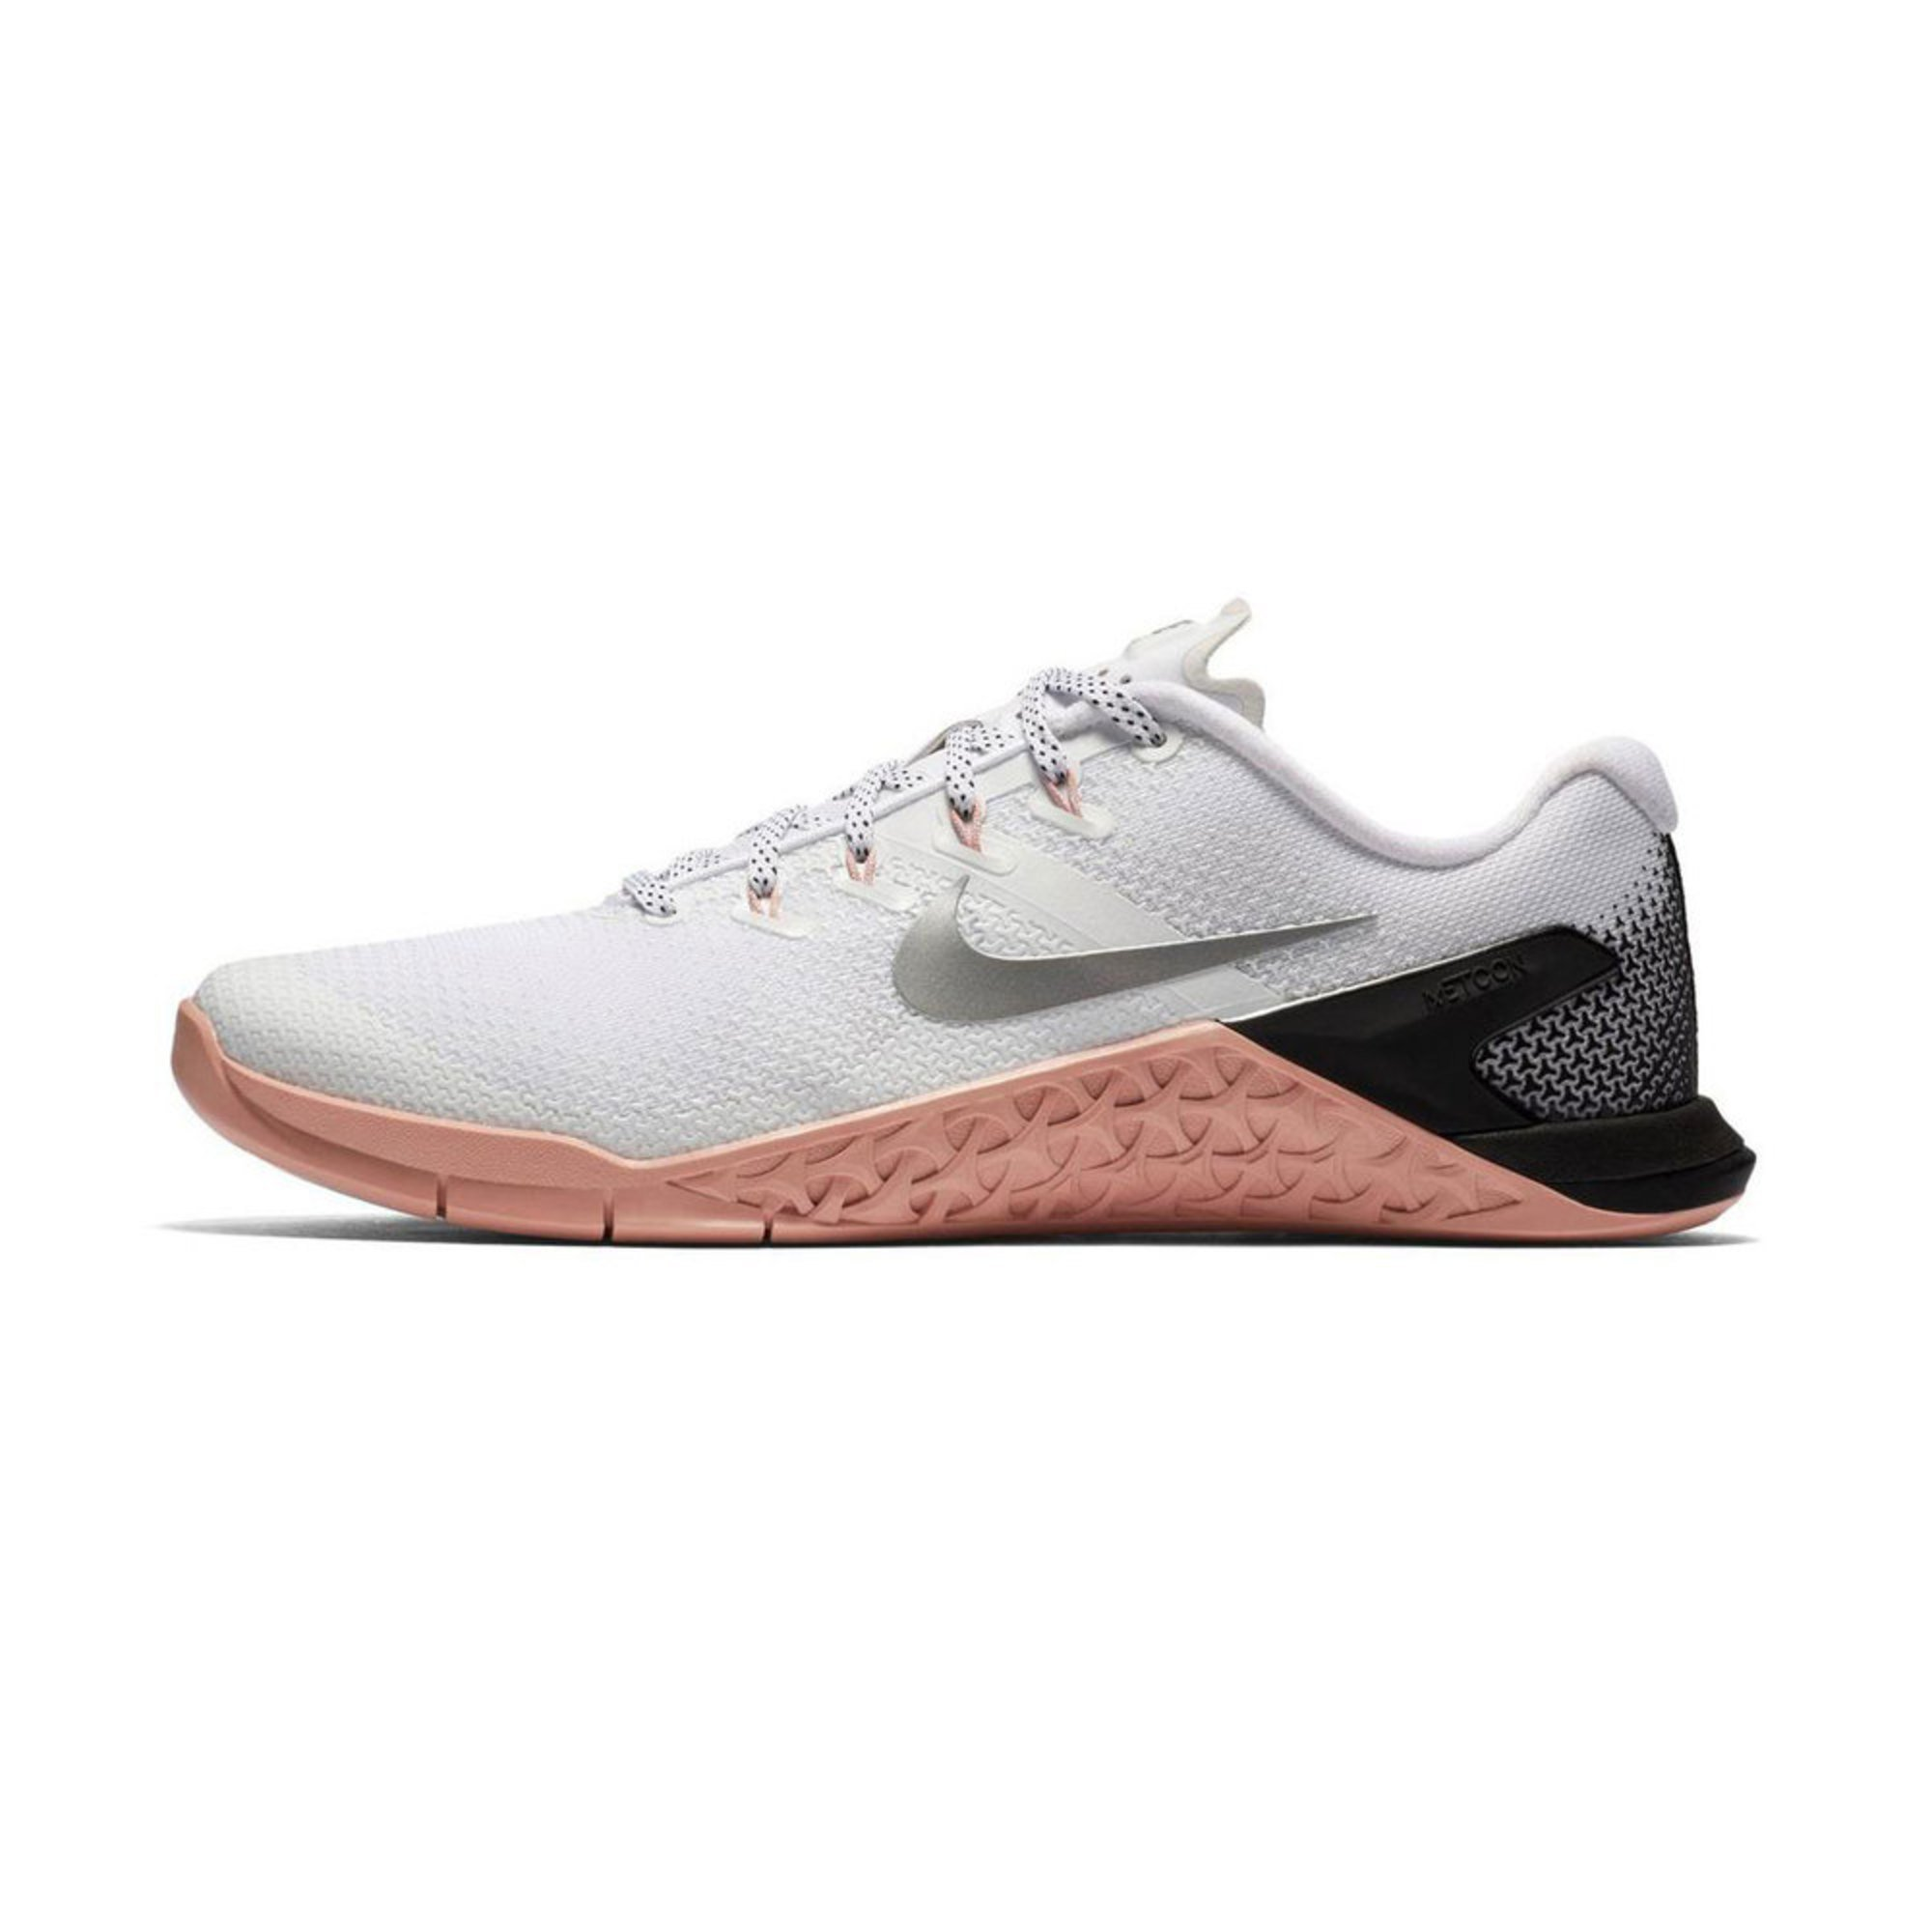 Nike Women s Metcon 4 Training Shoe  d2d10dfd1